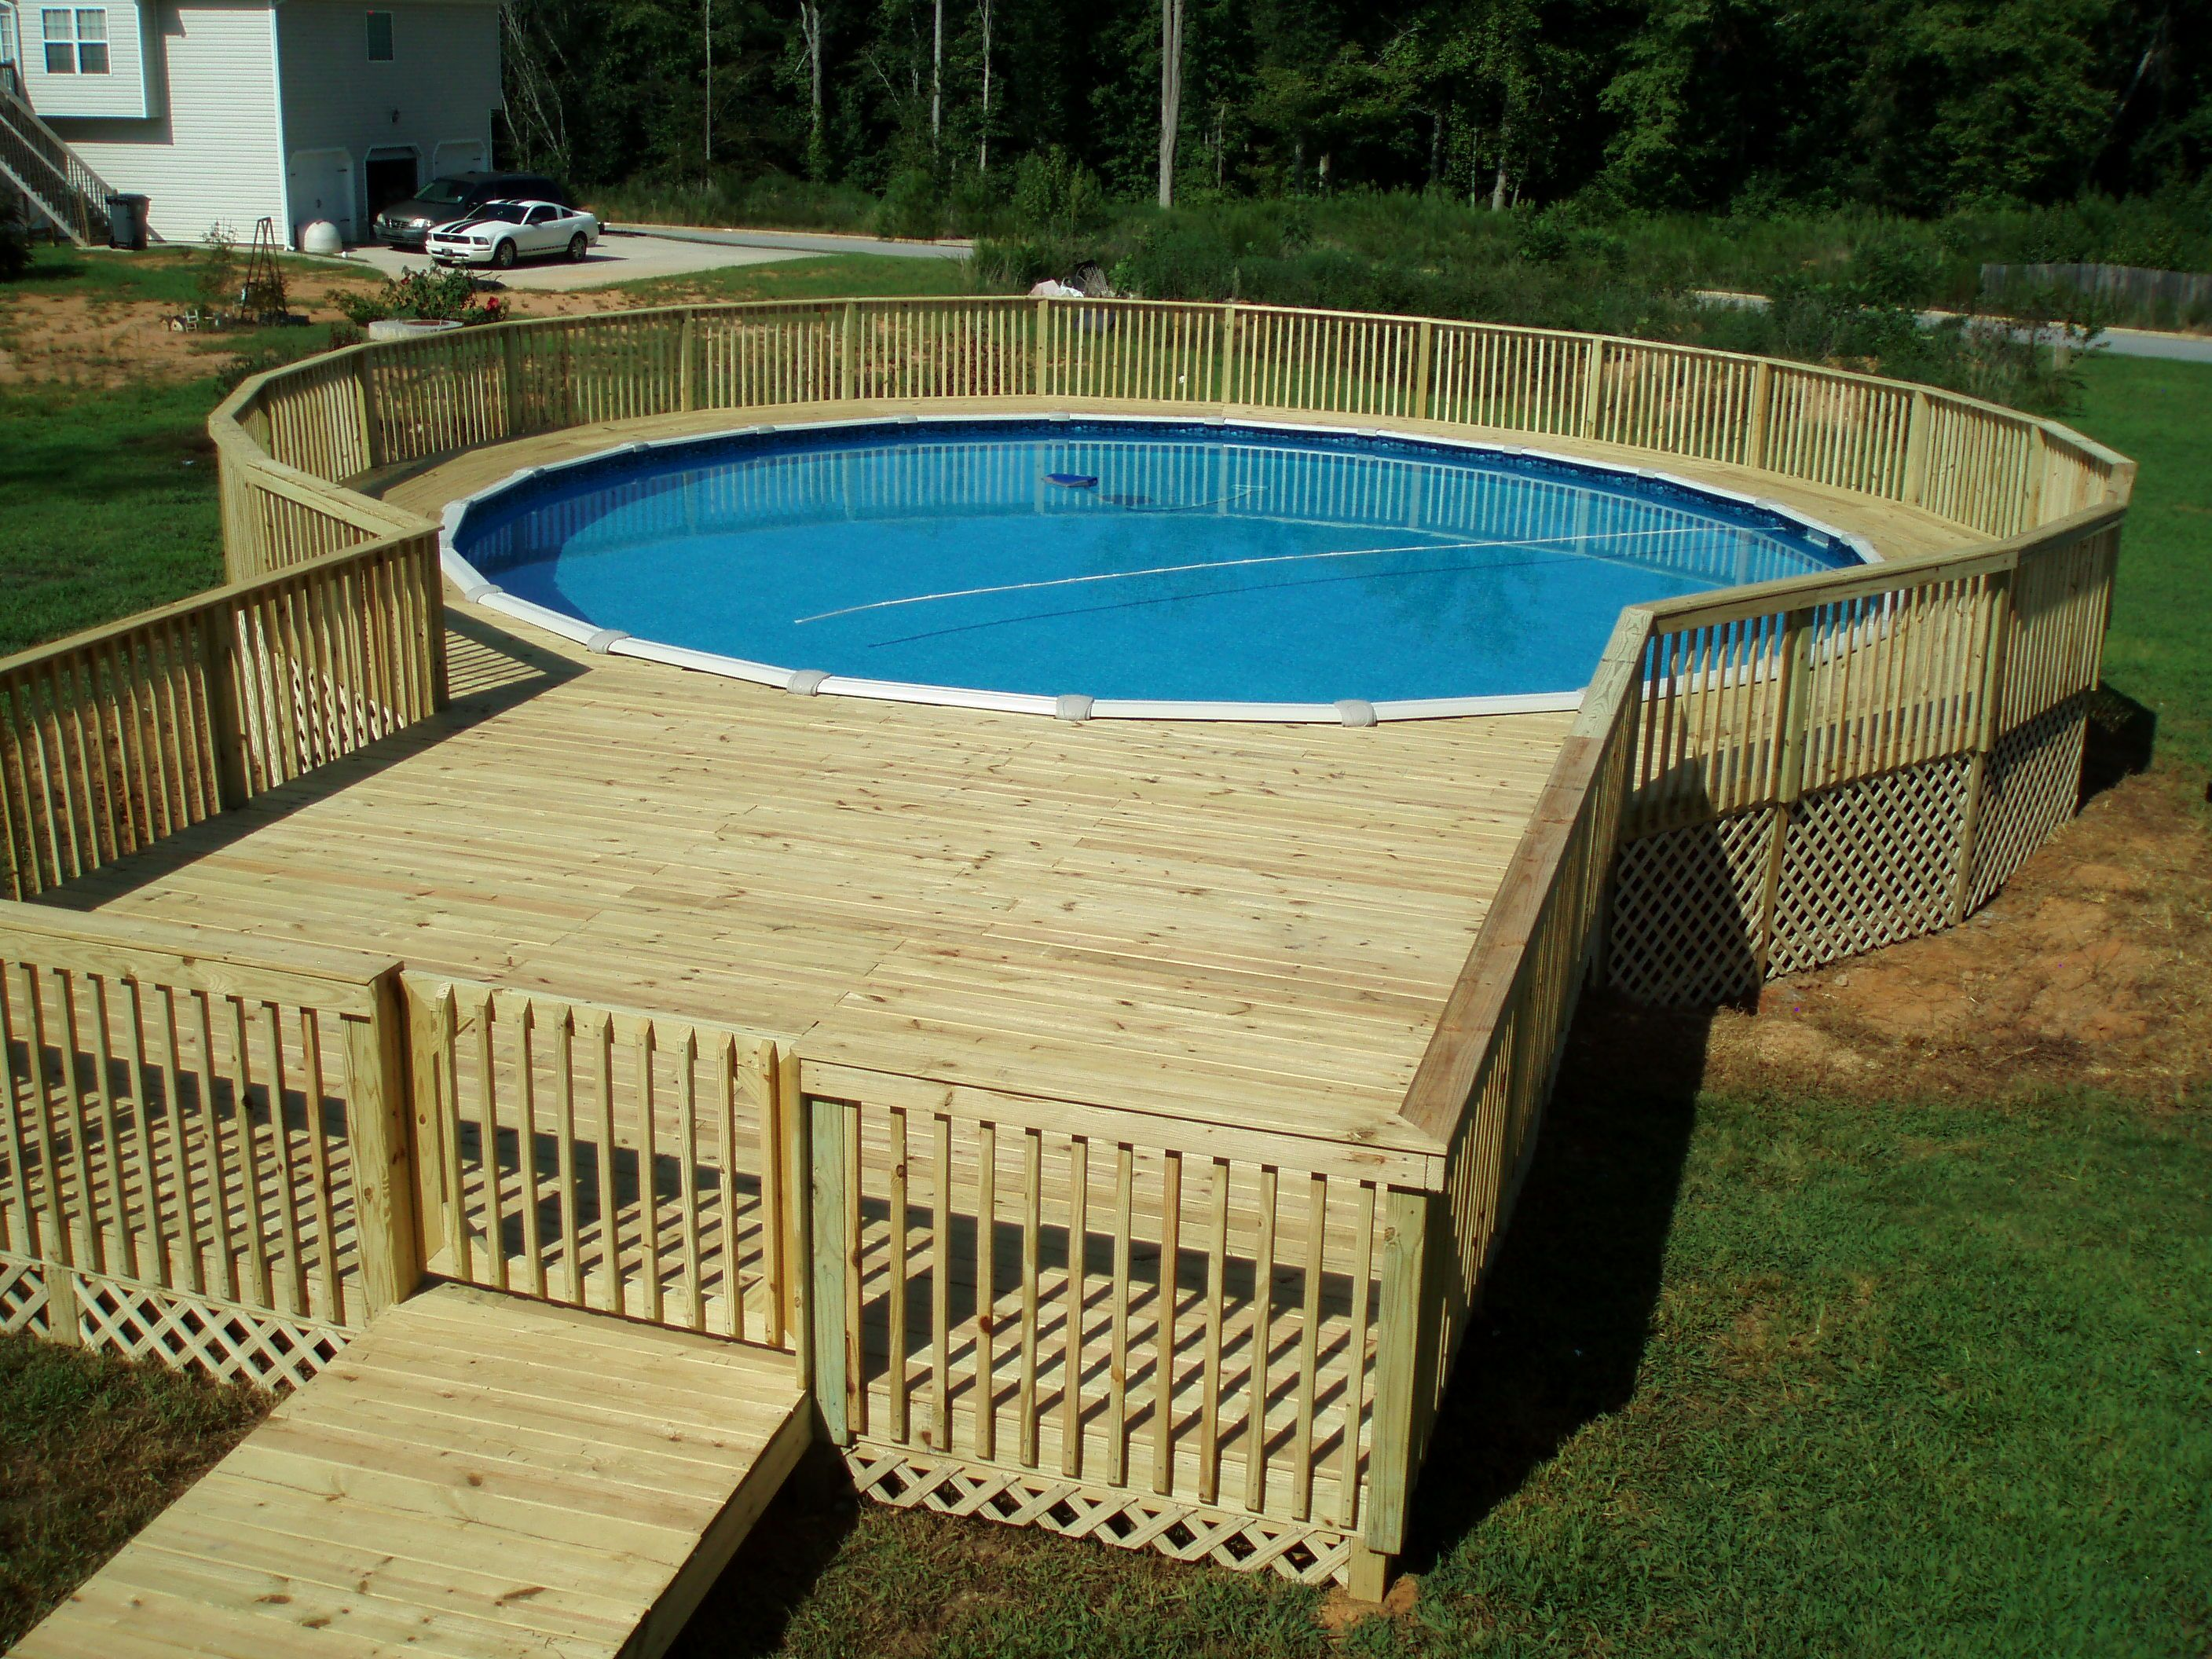 22+ Amazing and Unique Above Ground Pool Ideas with Decks | porches ...